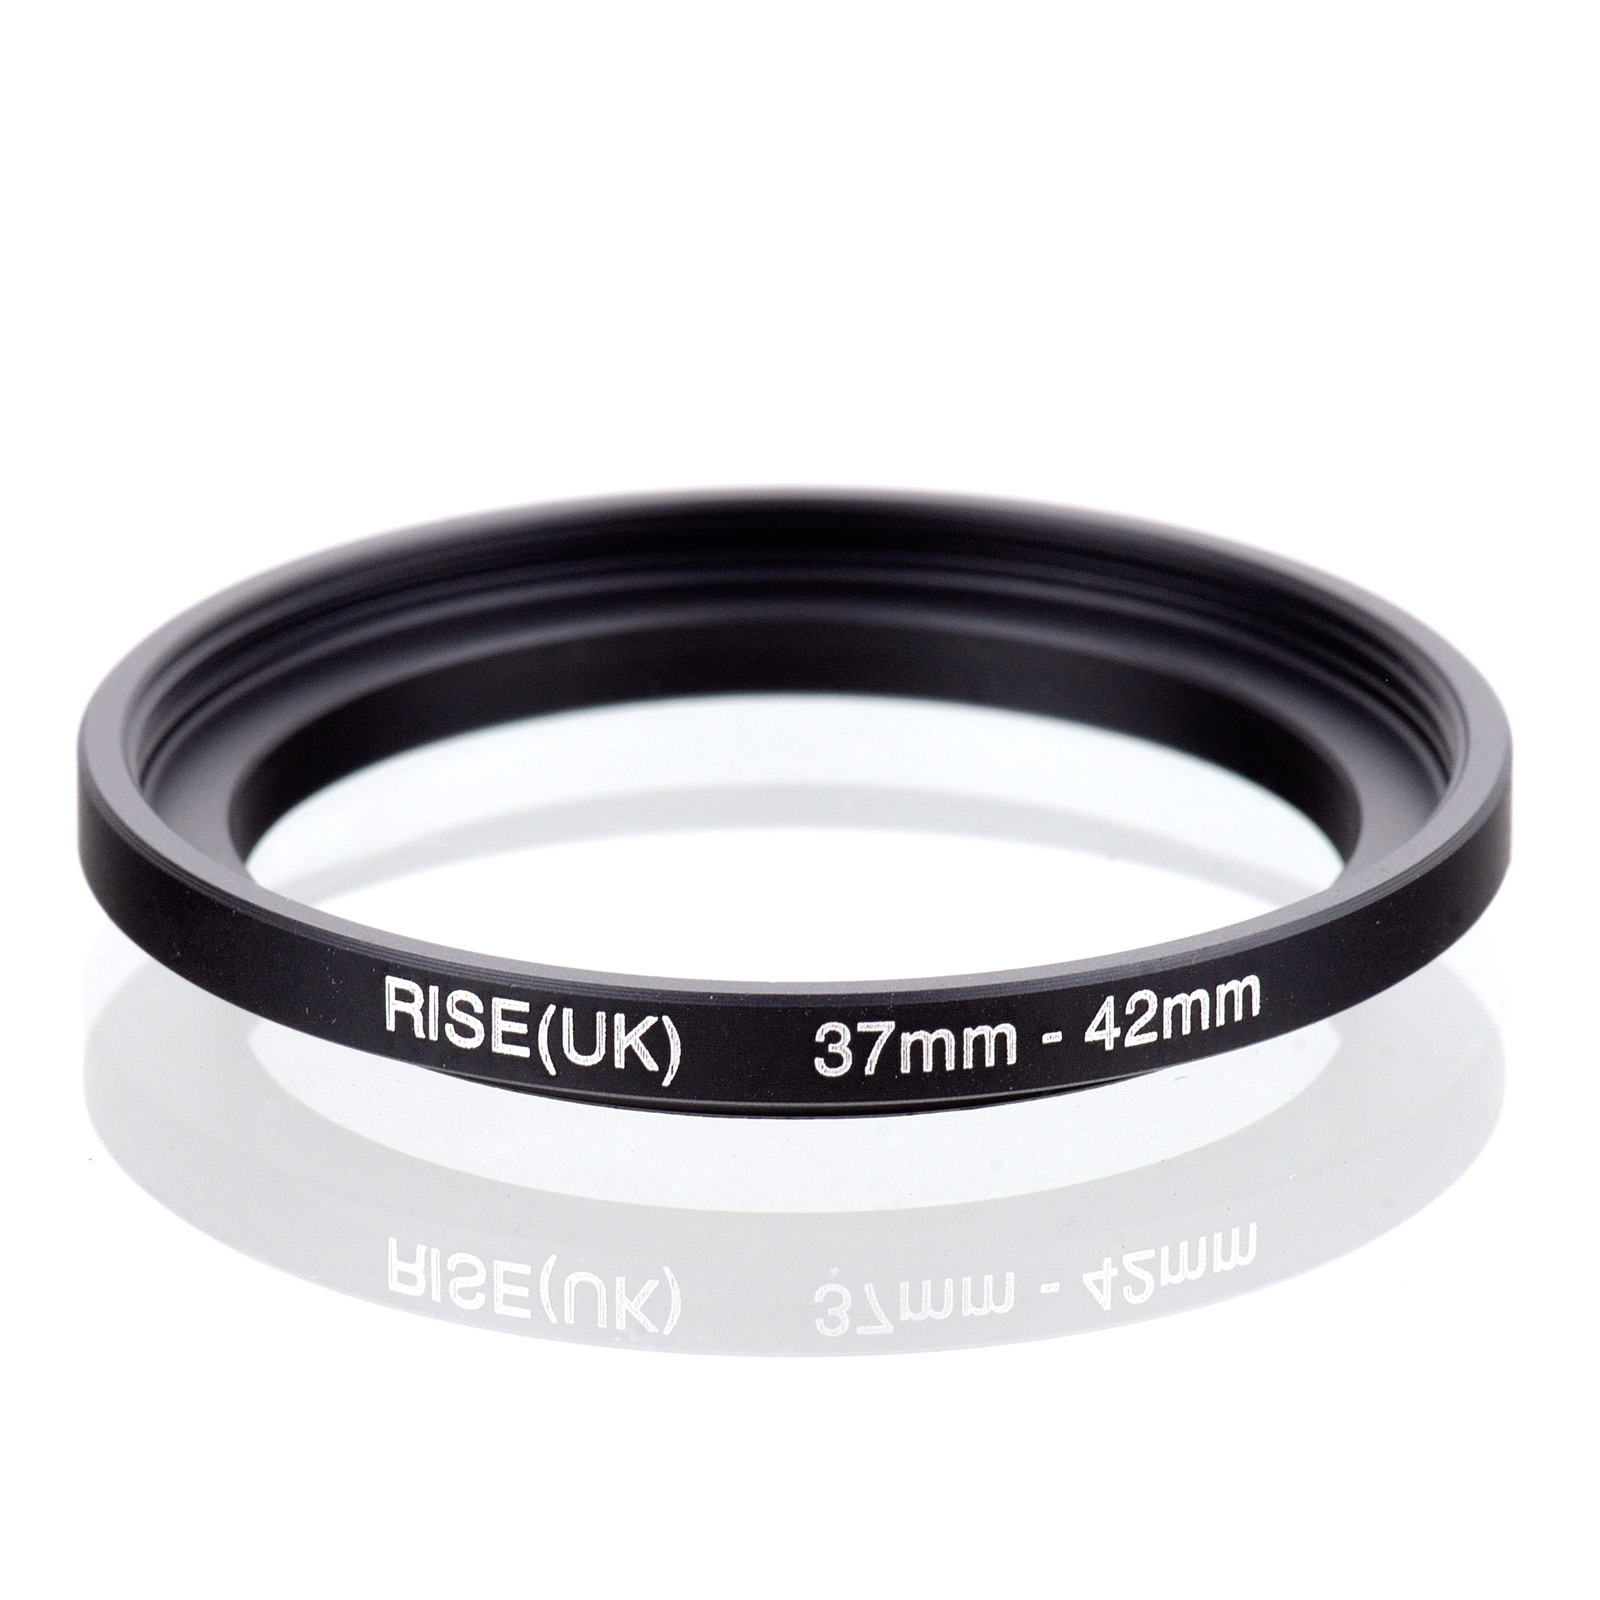 RISE(UK) 37mm-42mm 37-42 Mm 37 To 42 Step Up Filter Ring Adapter